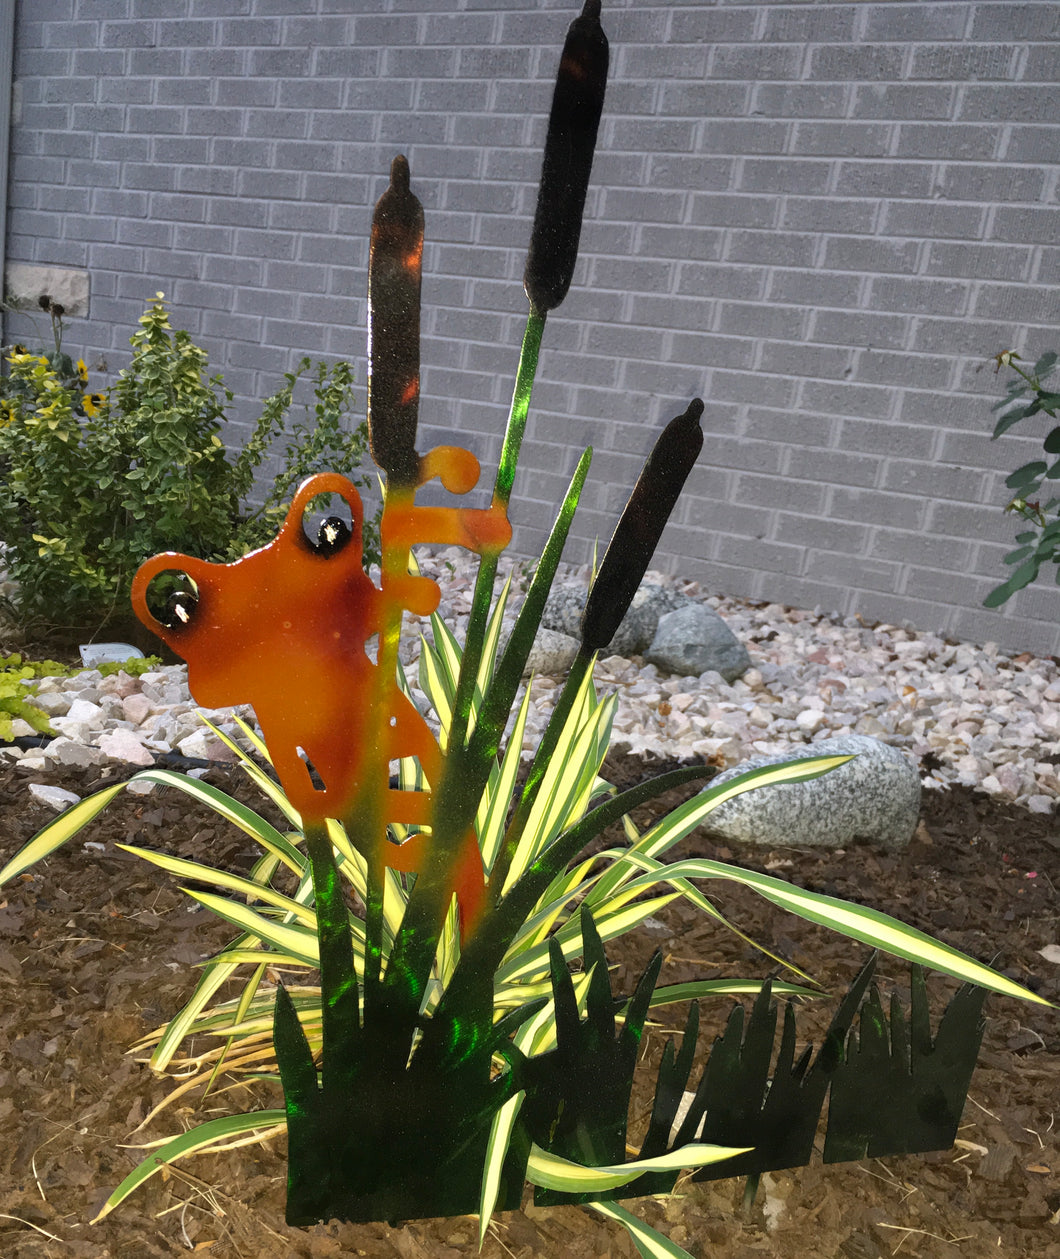 Metal pond artwork, orange frog peeking through the cattails.  Created by Forged From The Ashes Metalworks & Design Inspirational Artwork